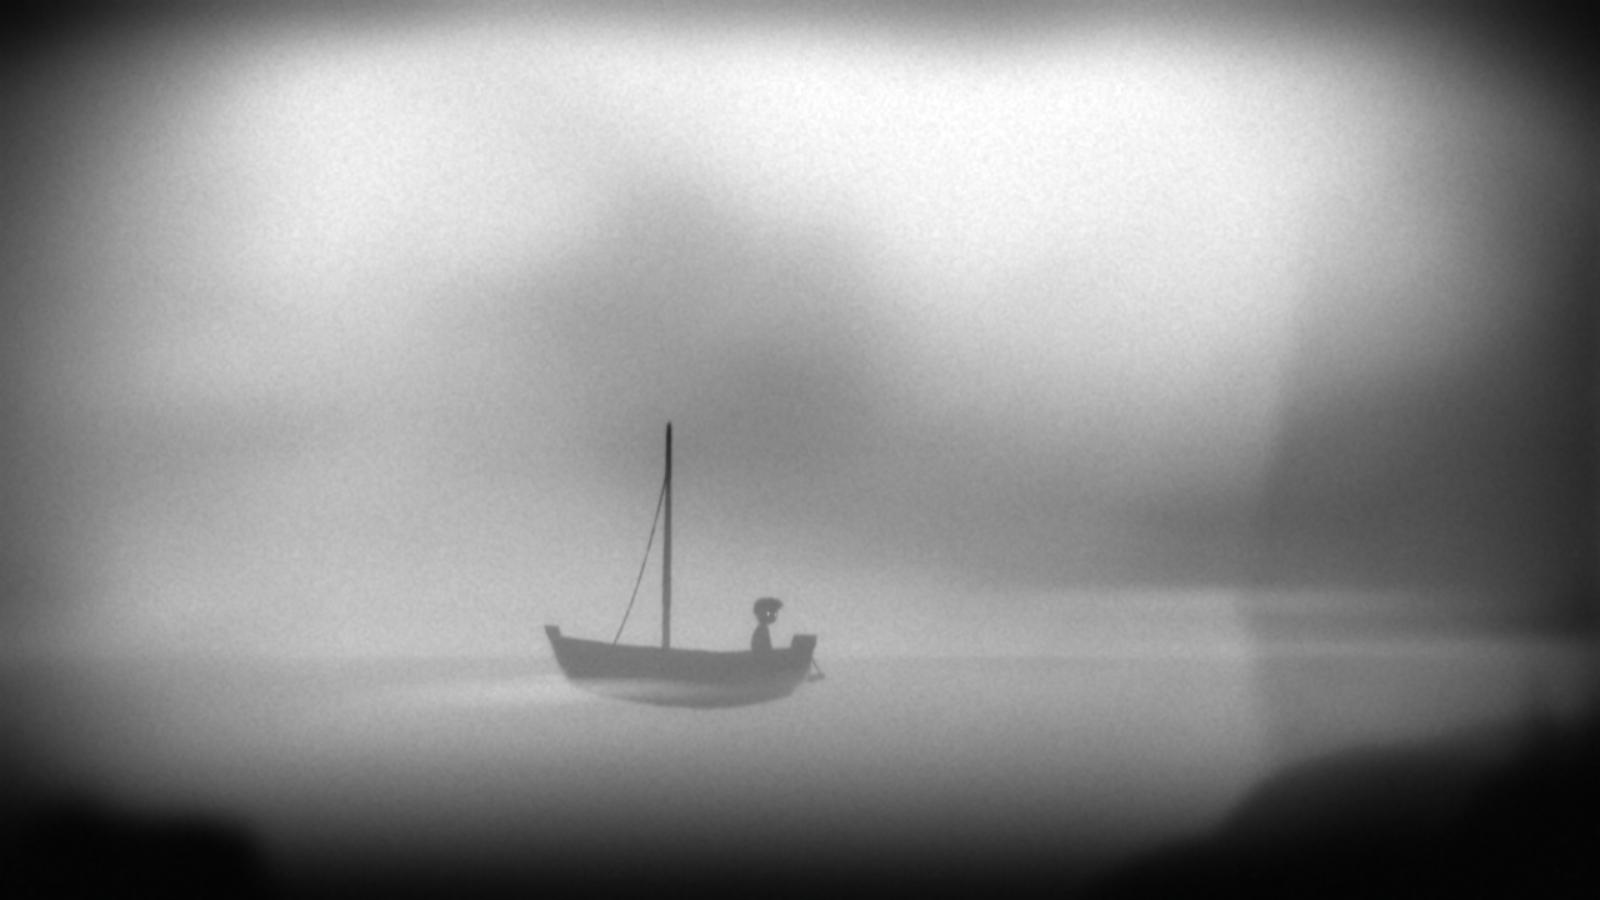 Limbo Dinghy 1127128 Hd Wallpaper Backgrounds Download